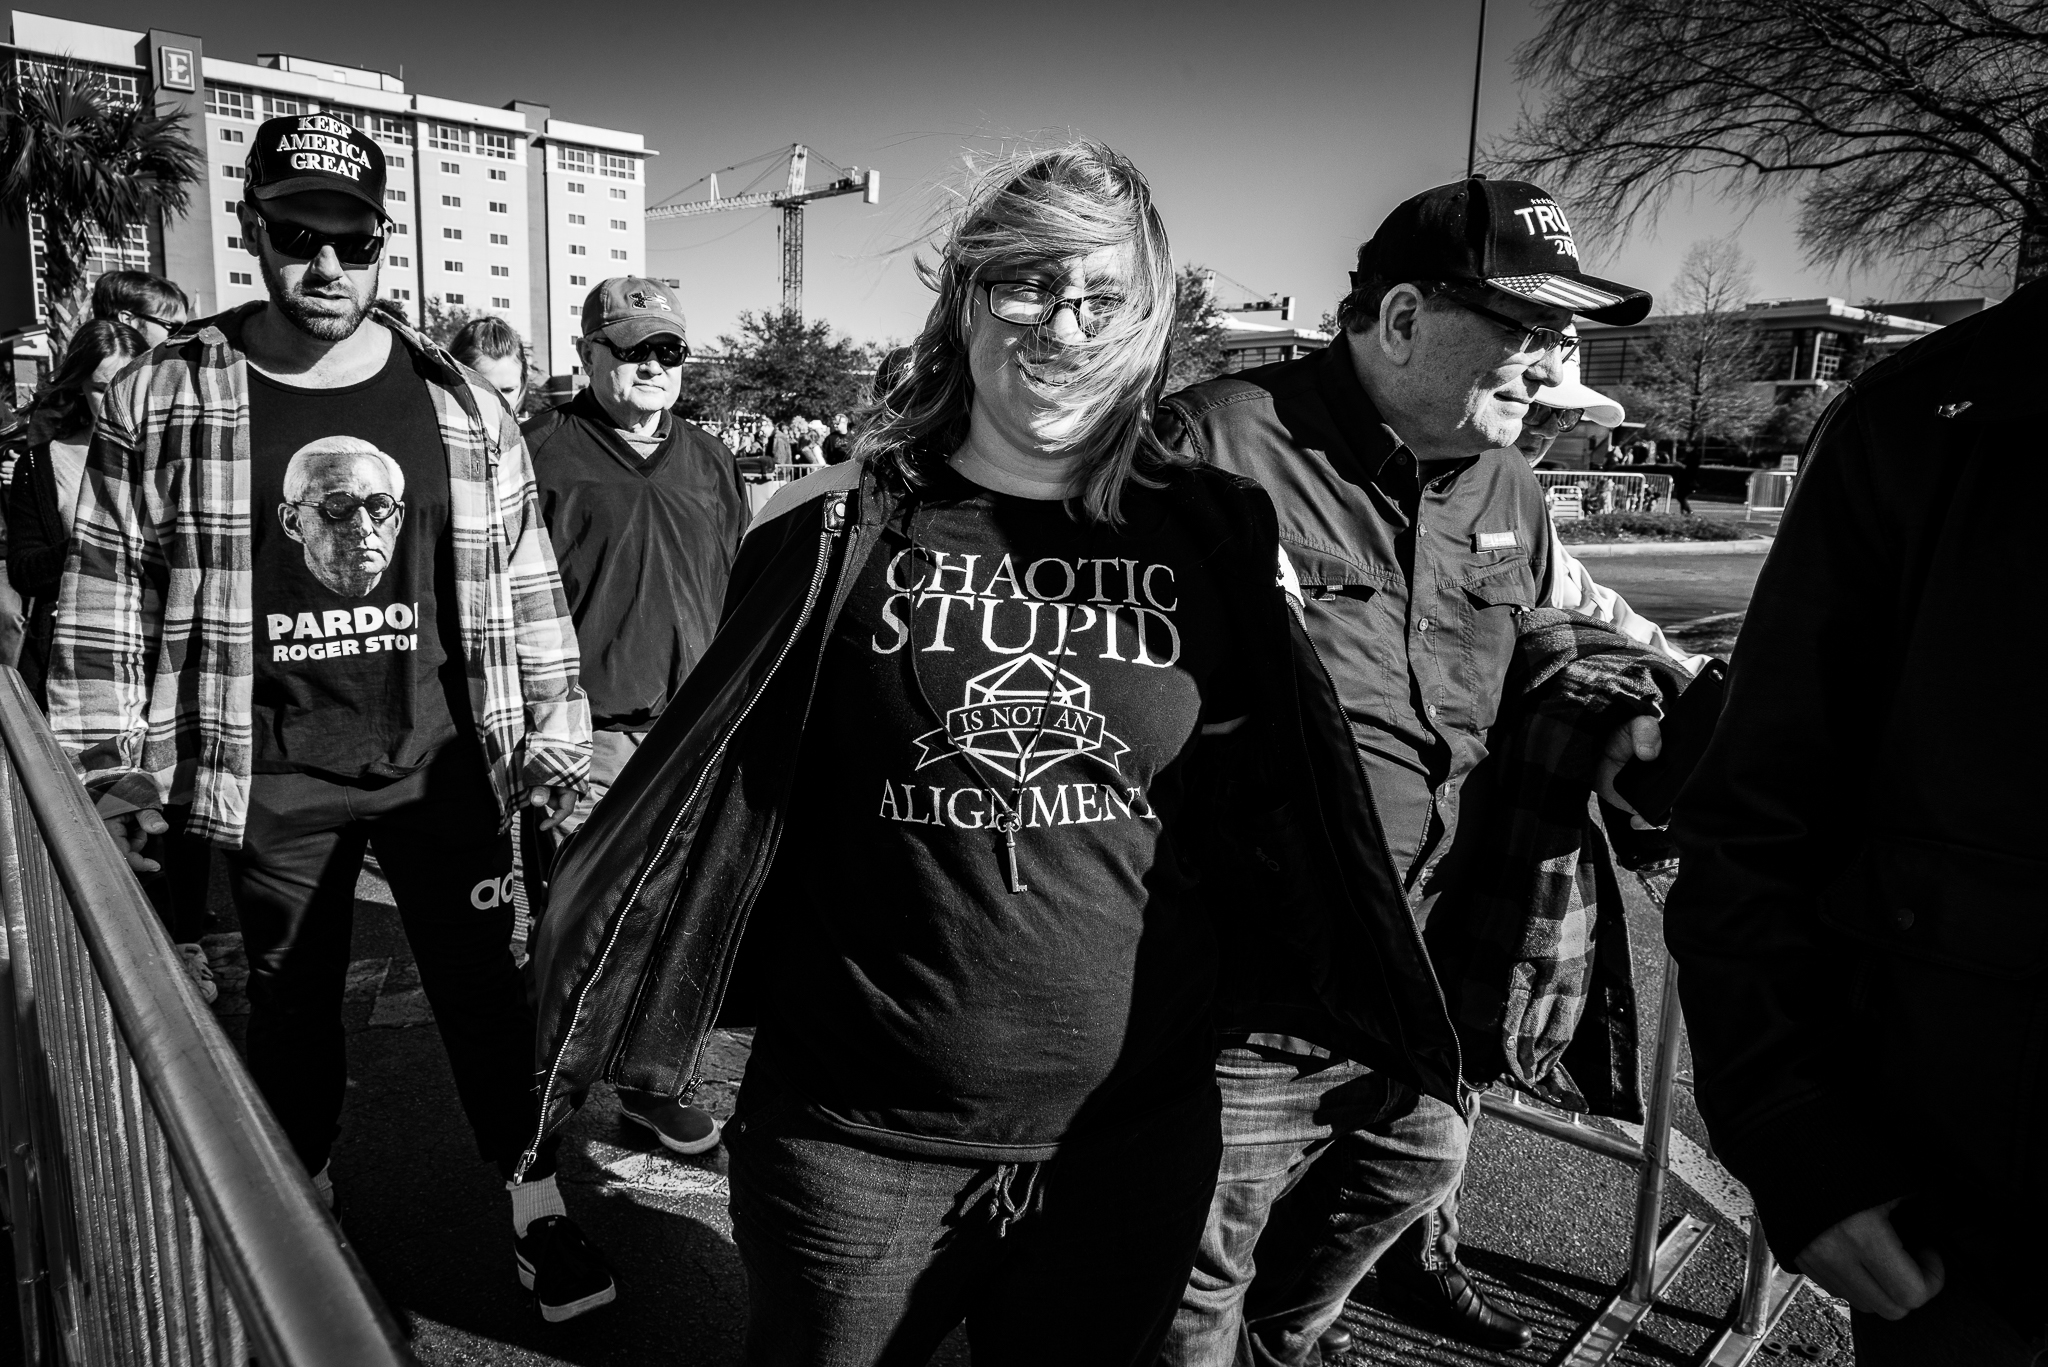 Trump supporters show off their graphic tees in line at a rally in North Charleston, South Carolina. Photo: Lance Monotone.